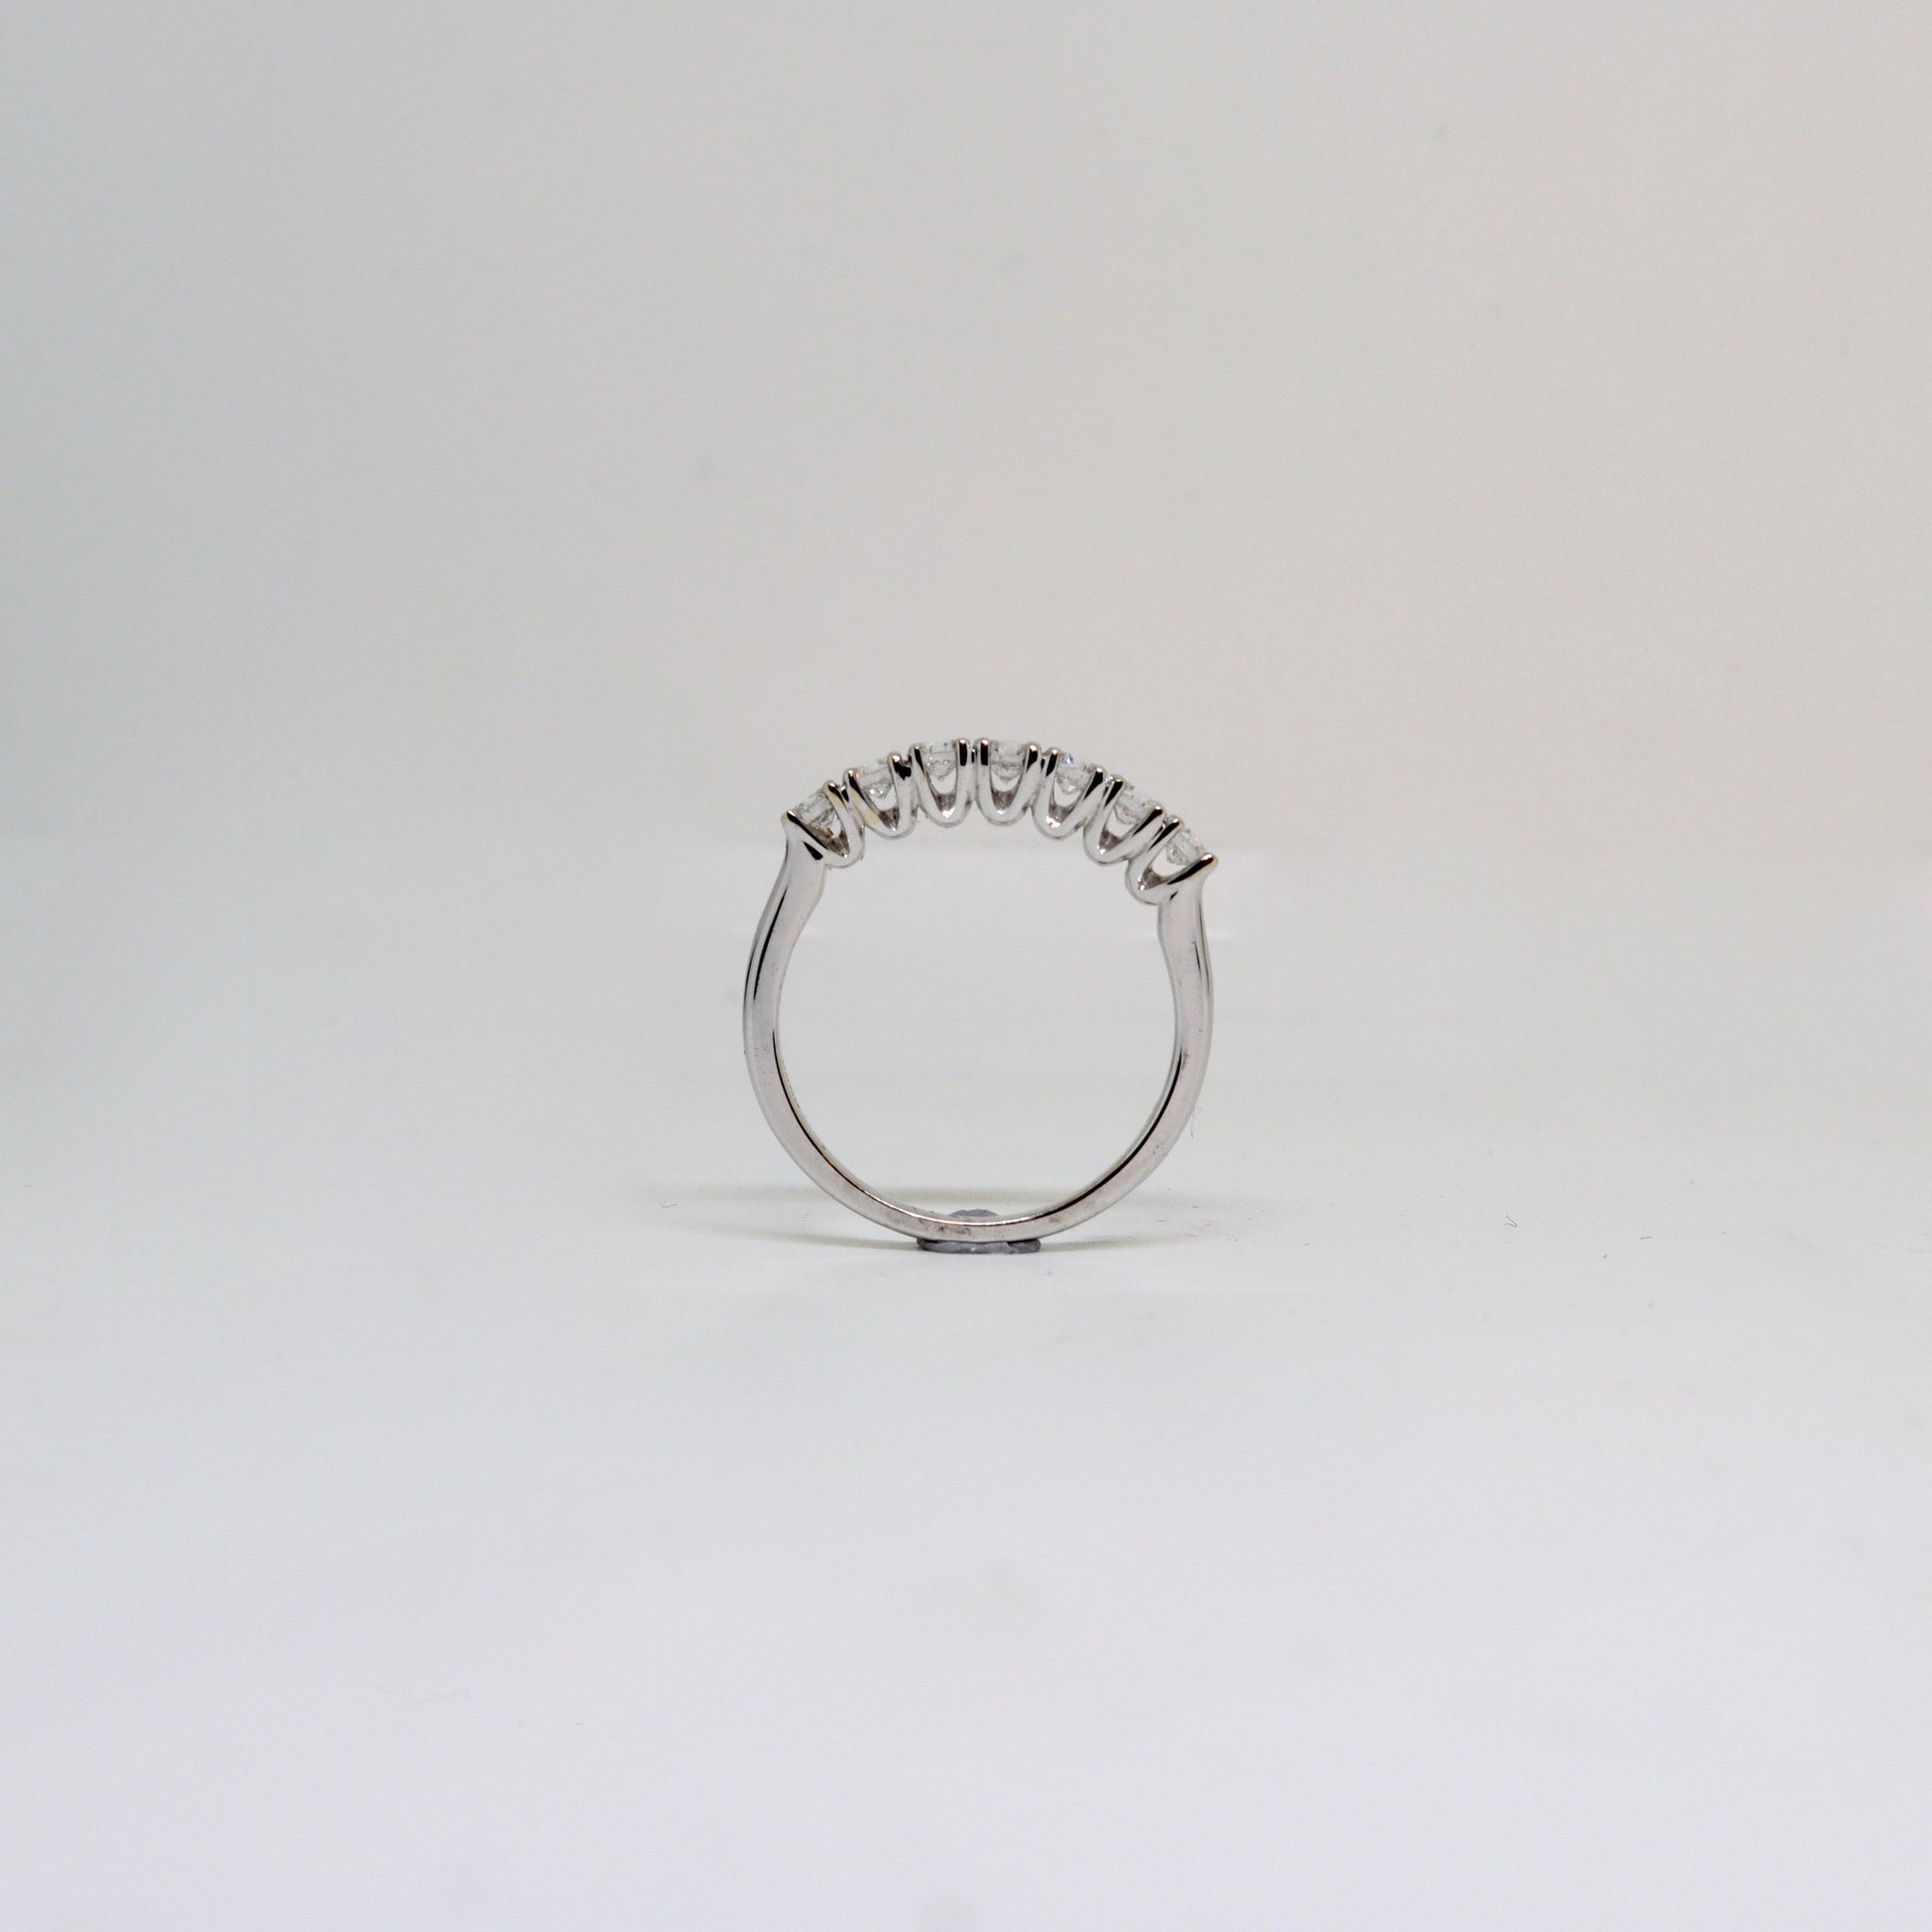 7 Stone Claw set Diamond Ring